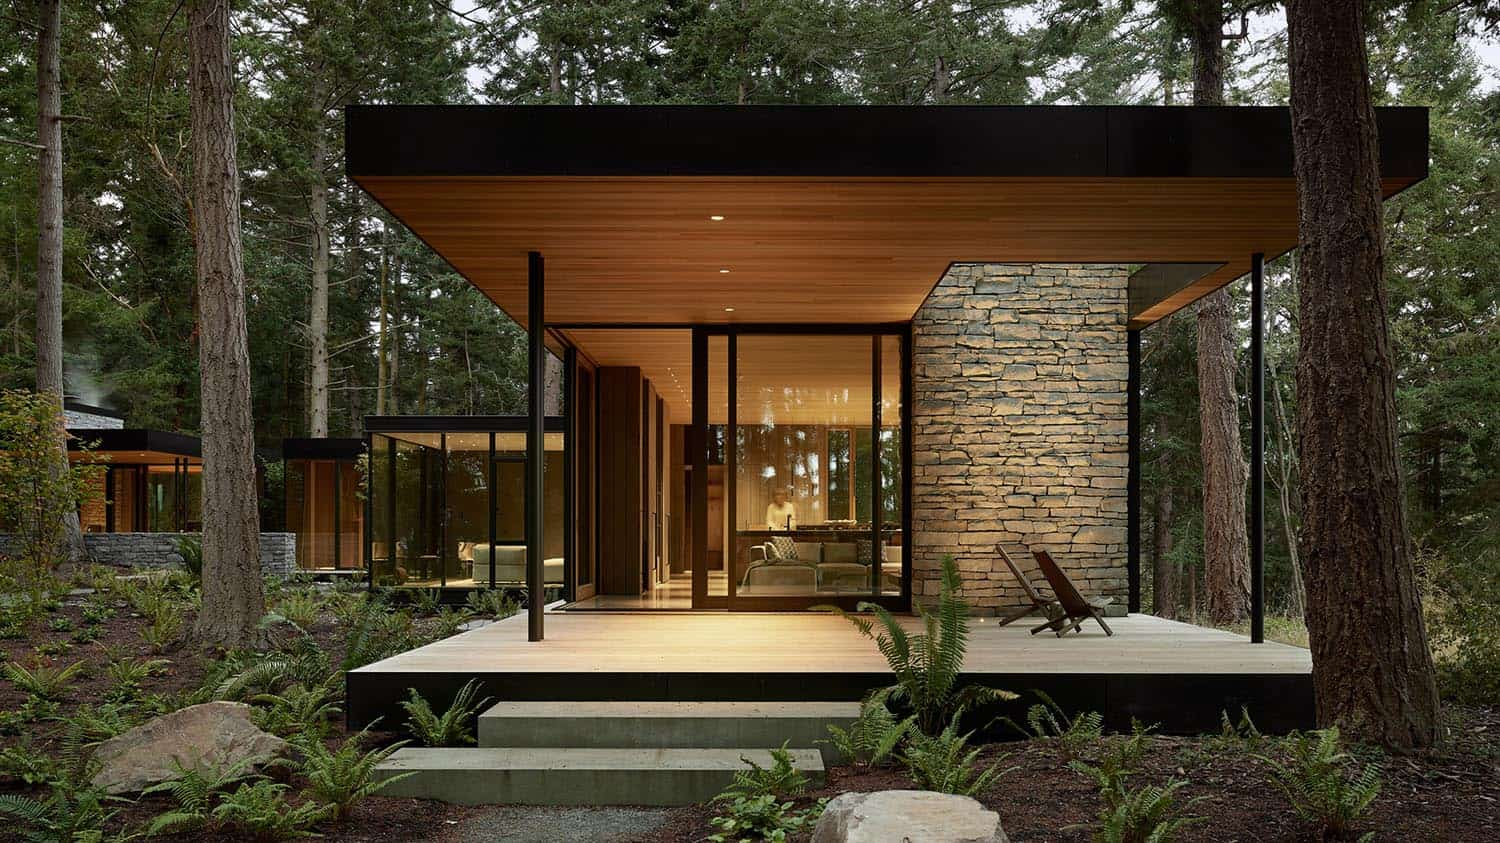 Glass House Surrounded By A Tranquil Forest Setting On Whidbey Island